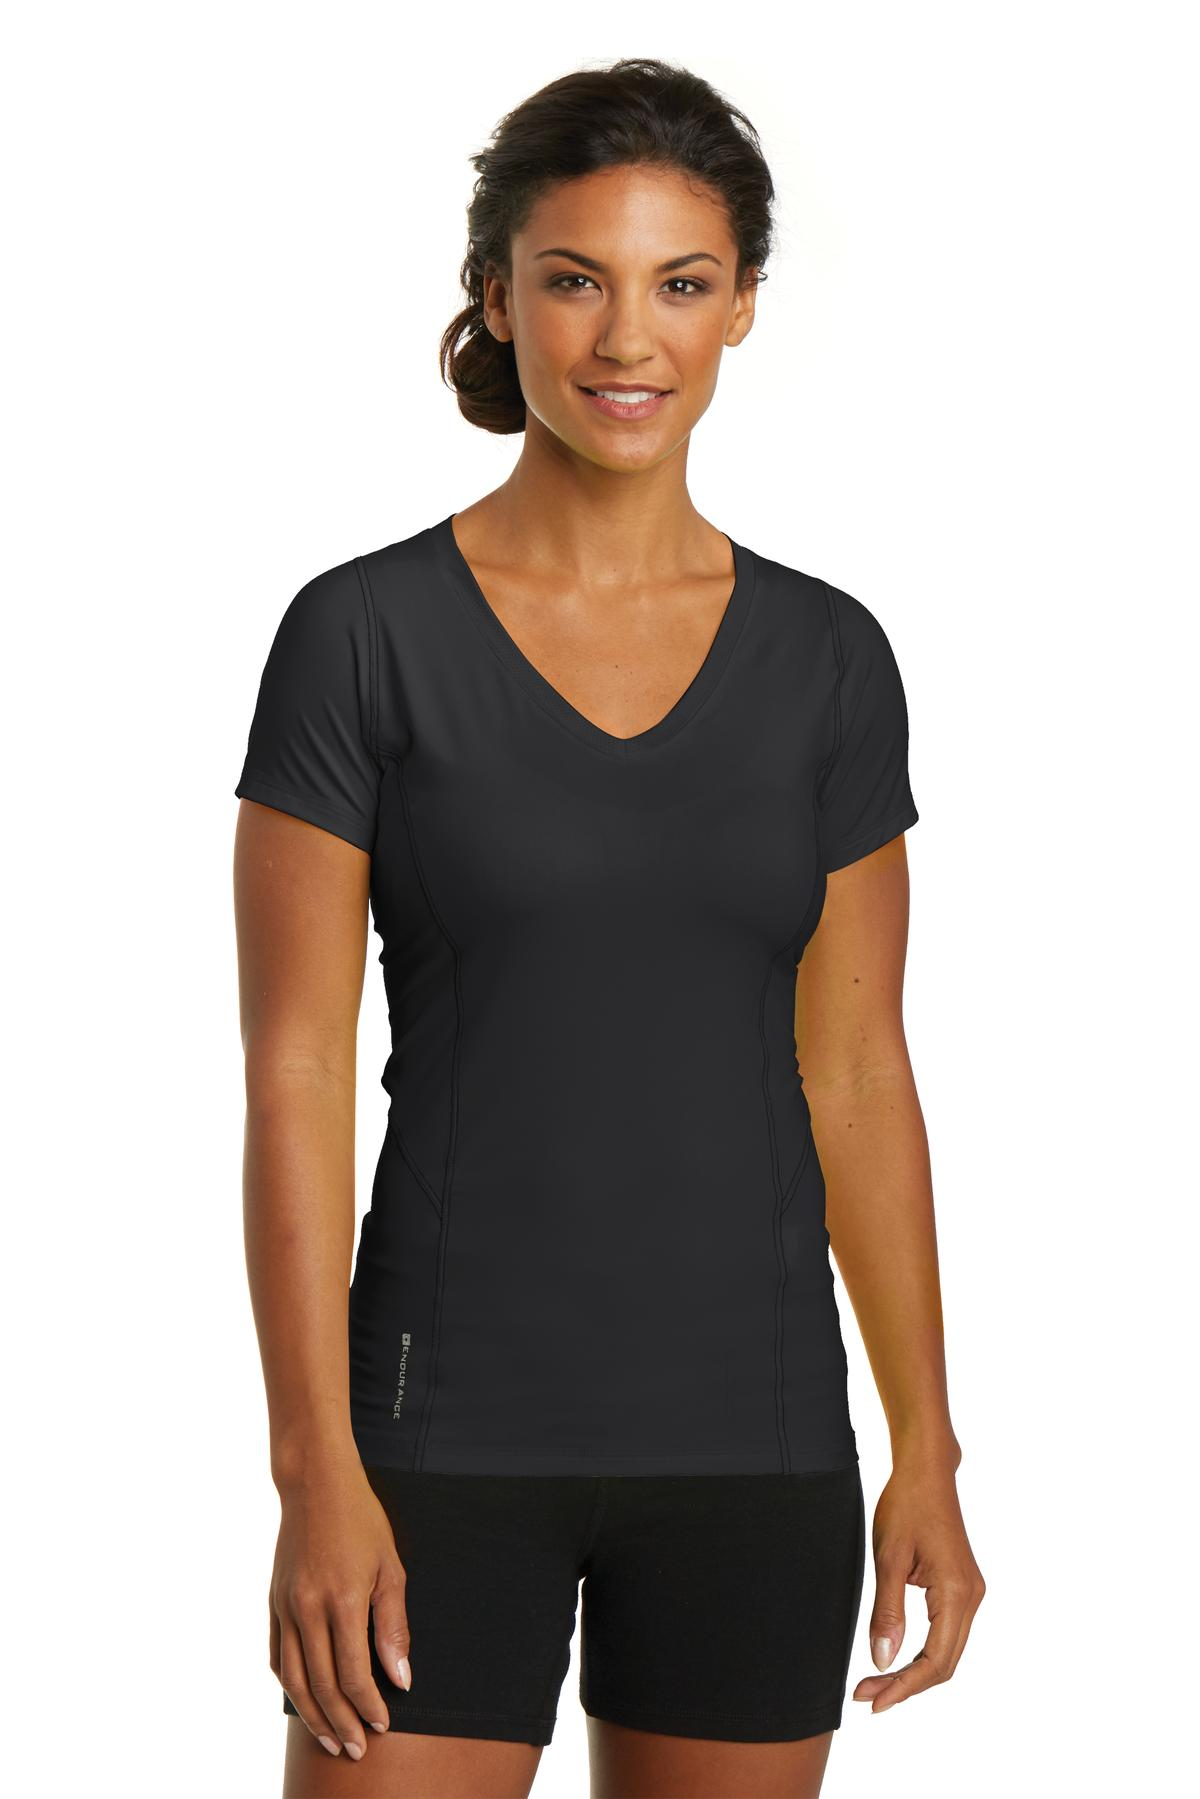 OGIO® LOE330 - ENDURANCE Ladies Nexus V-Neck